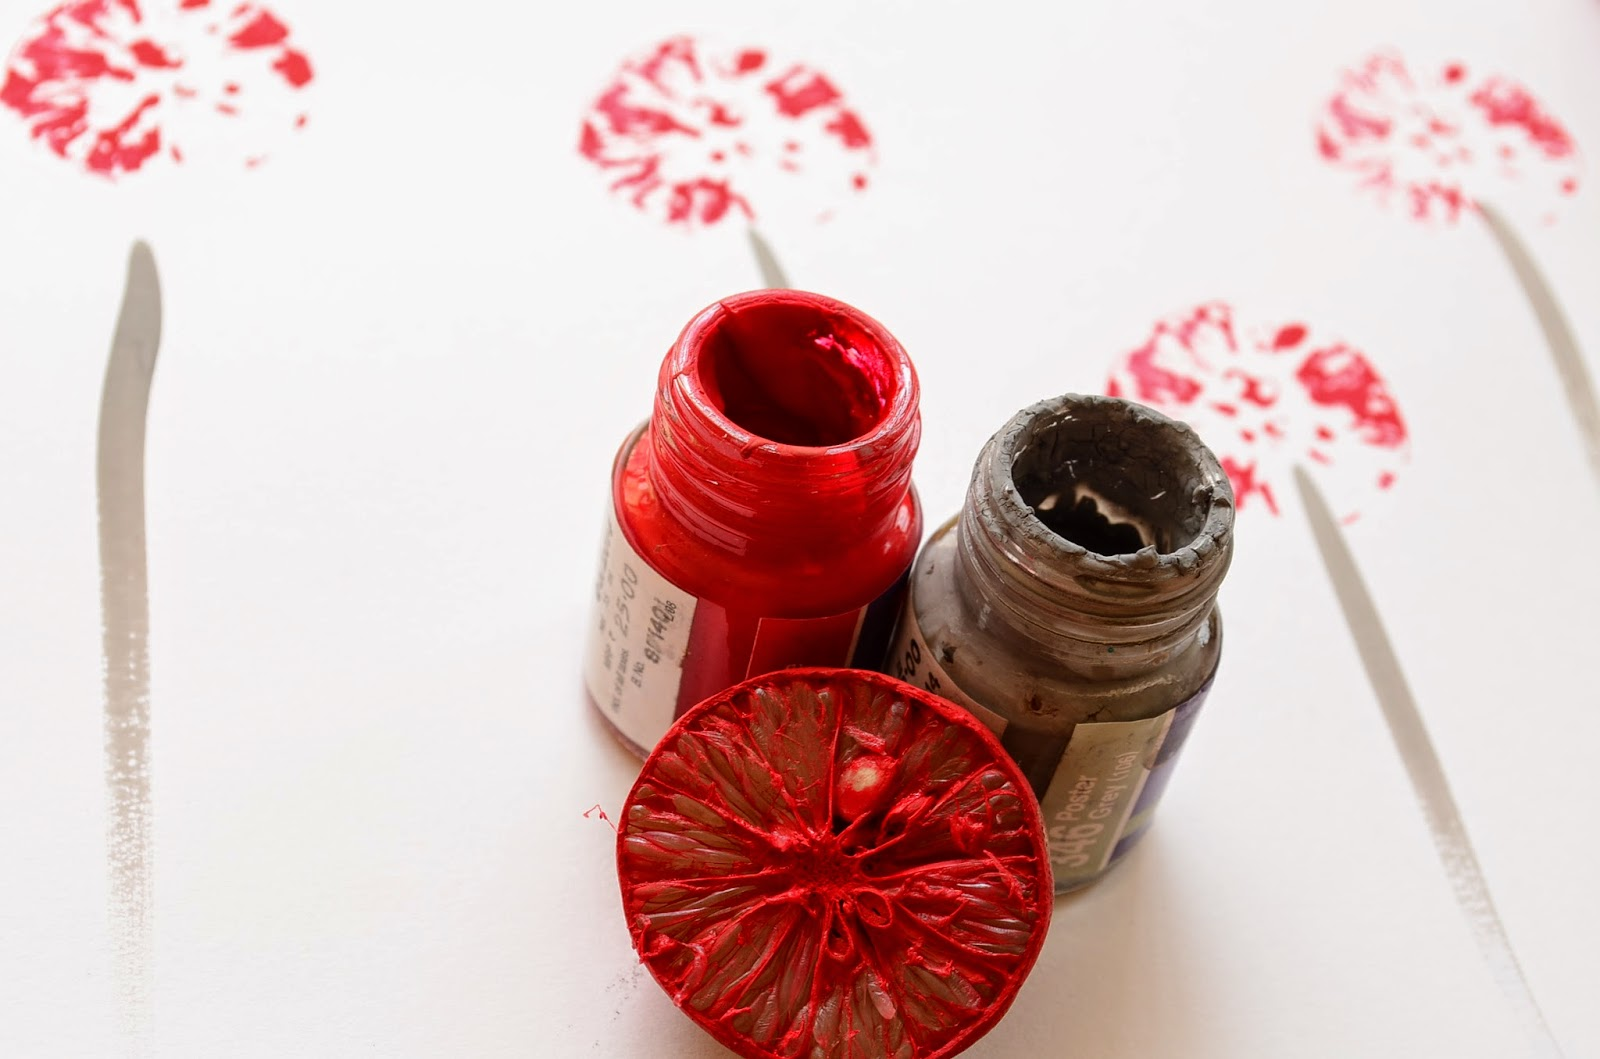 13 Non-Traditional Art Supplies for Preschoolers: Lemon Wedges